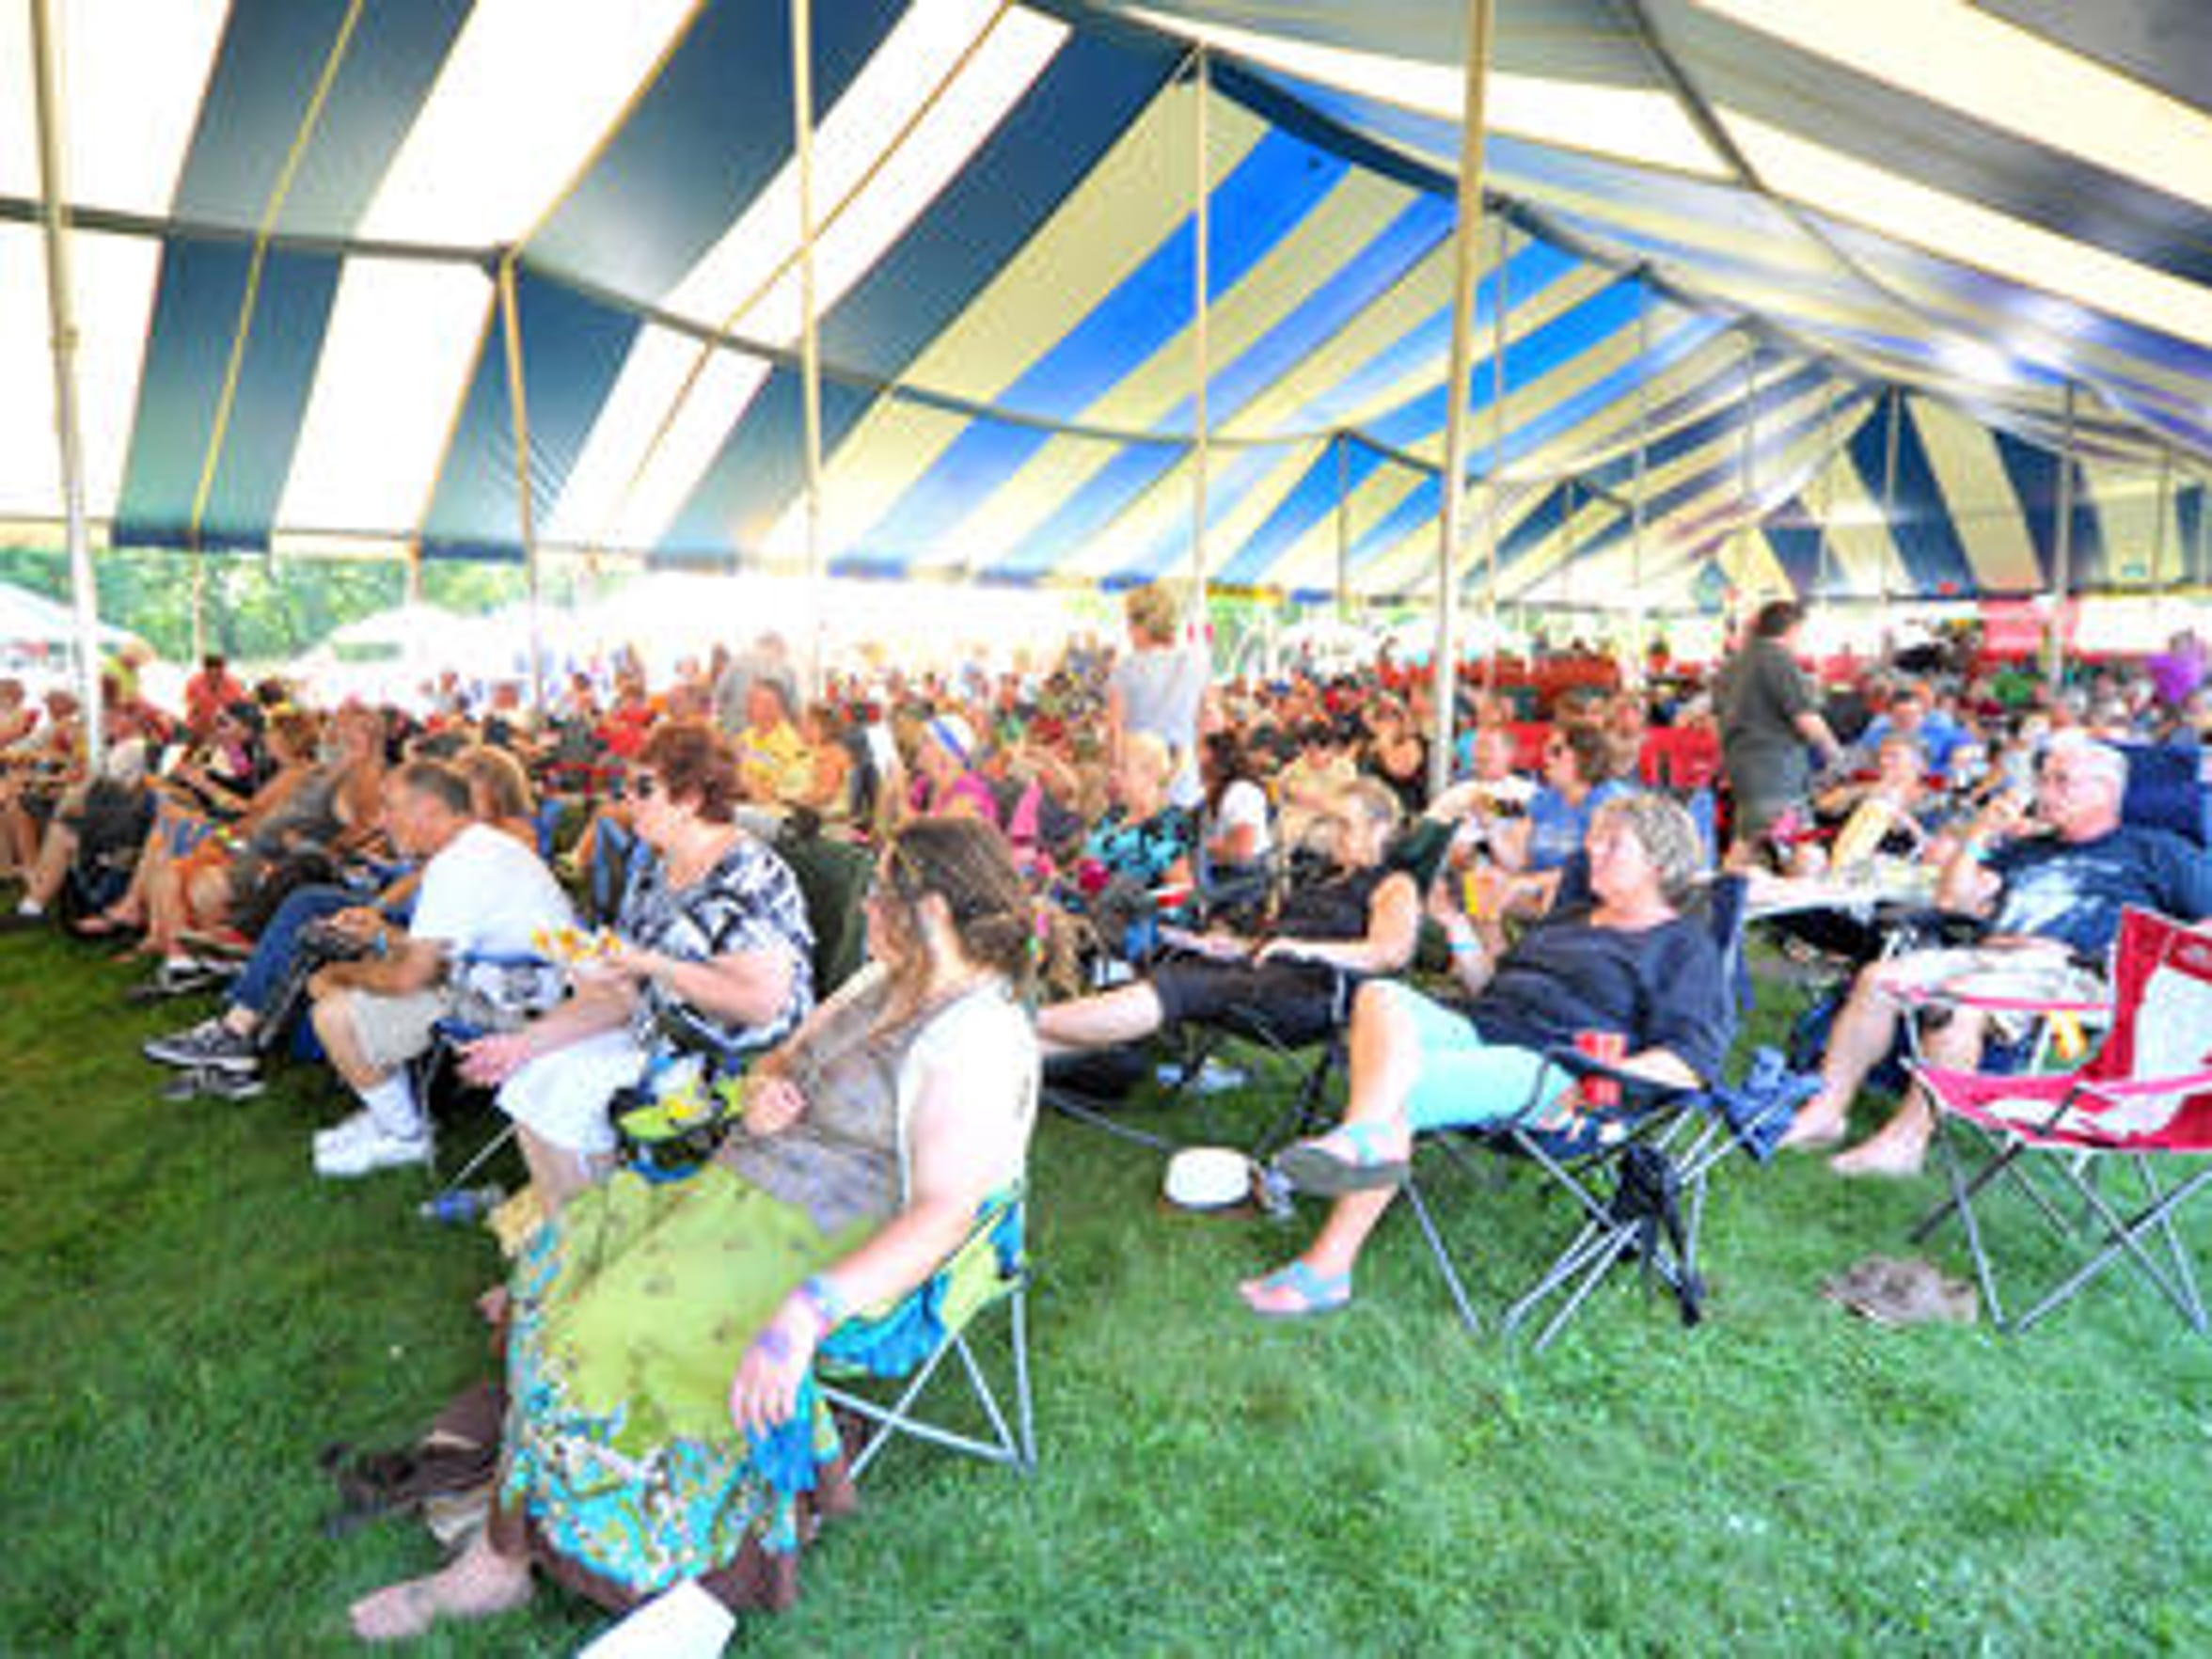 Patrons listen to Jimmi and the Band of Souls during the 2015 Big Bull Falls Blues Fest at Fern Island in Wausau.